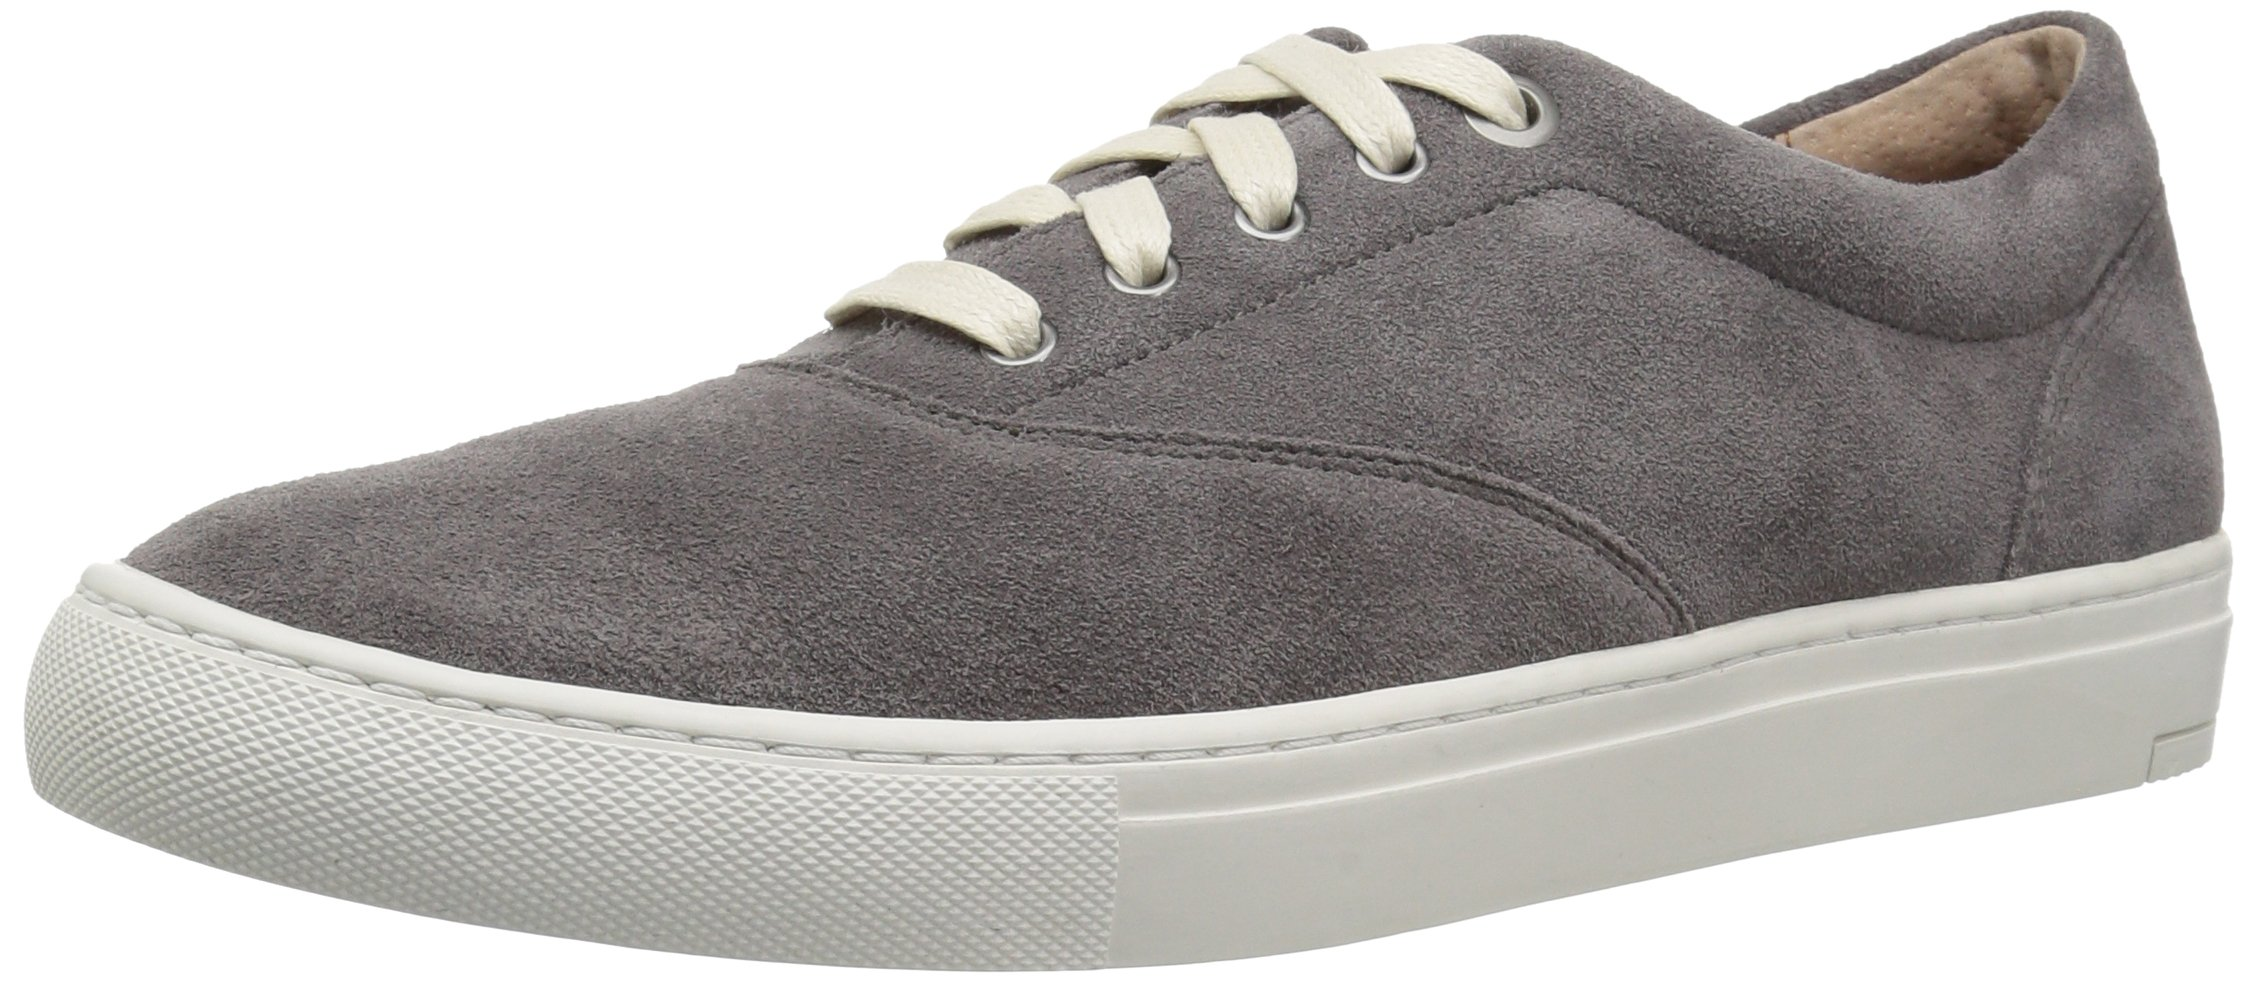 206 Collective Men's Olympic Casual Lace-up Sneaker, Gray Suede, 9.5 D US